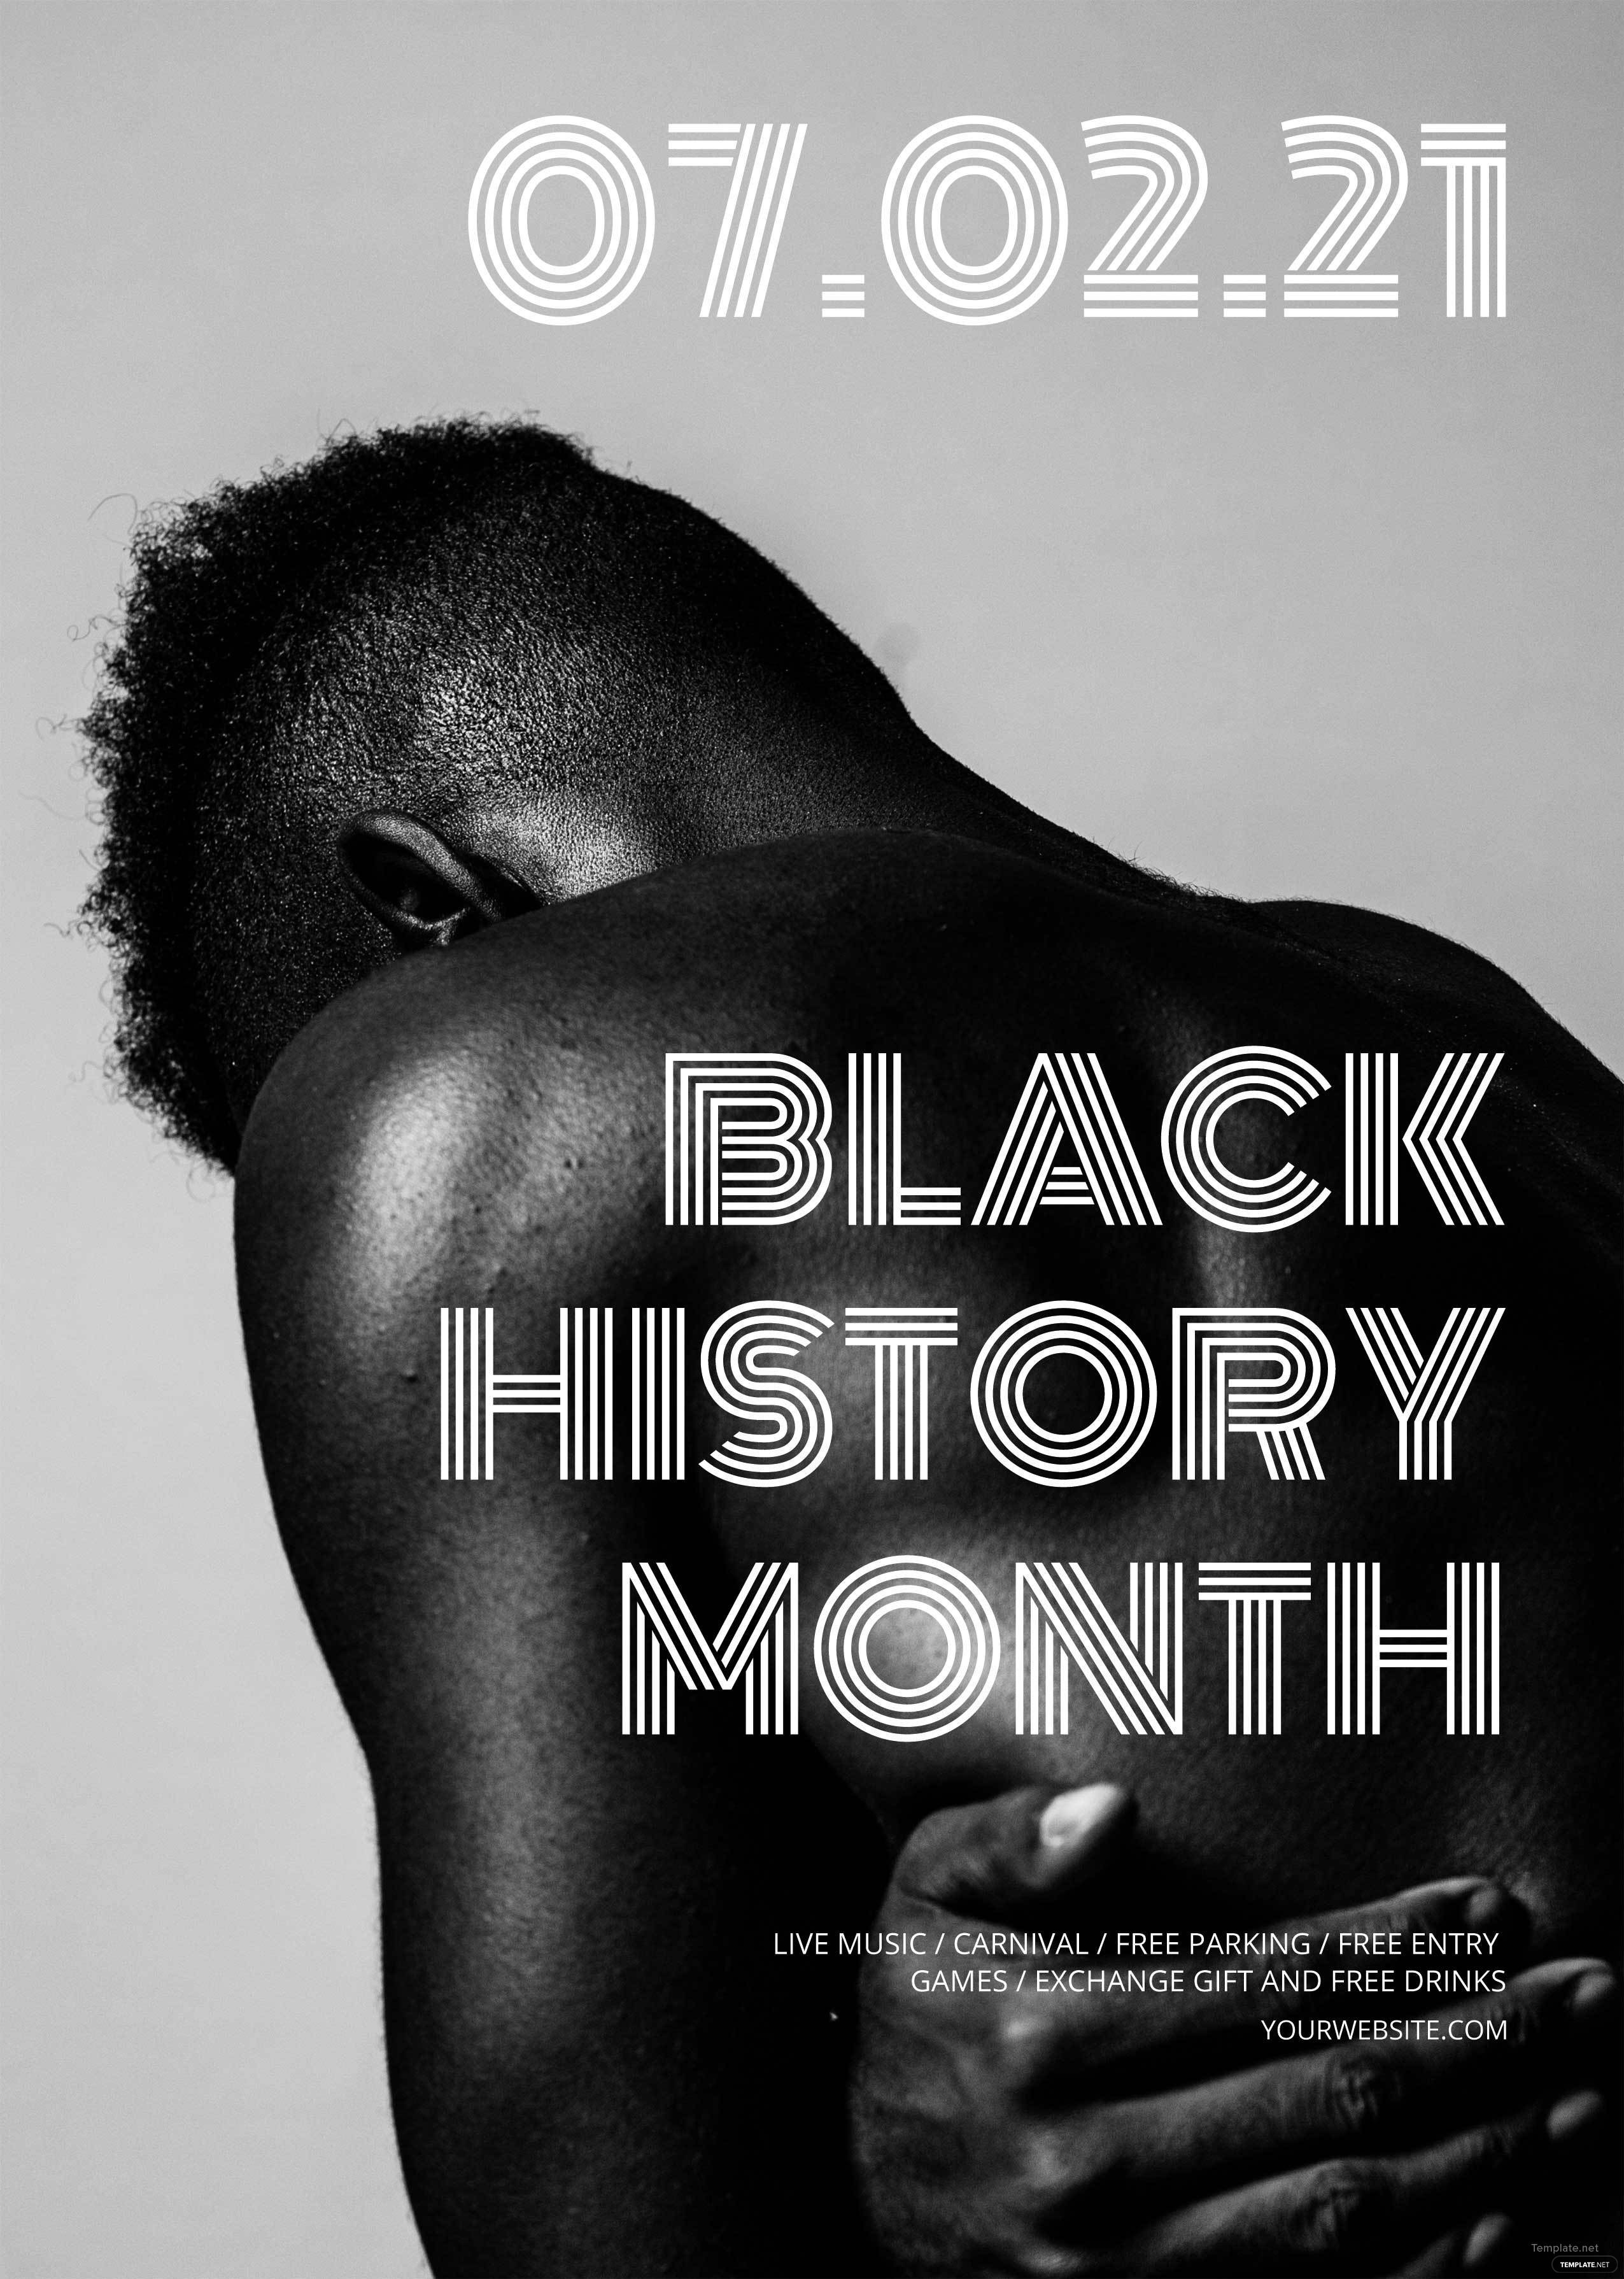 free black history month flyer template in adobe photoshop